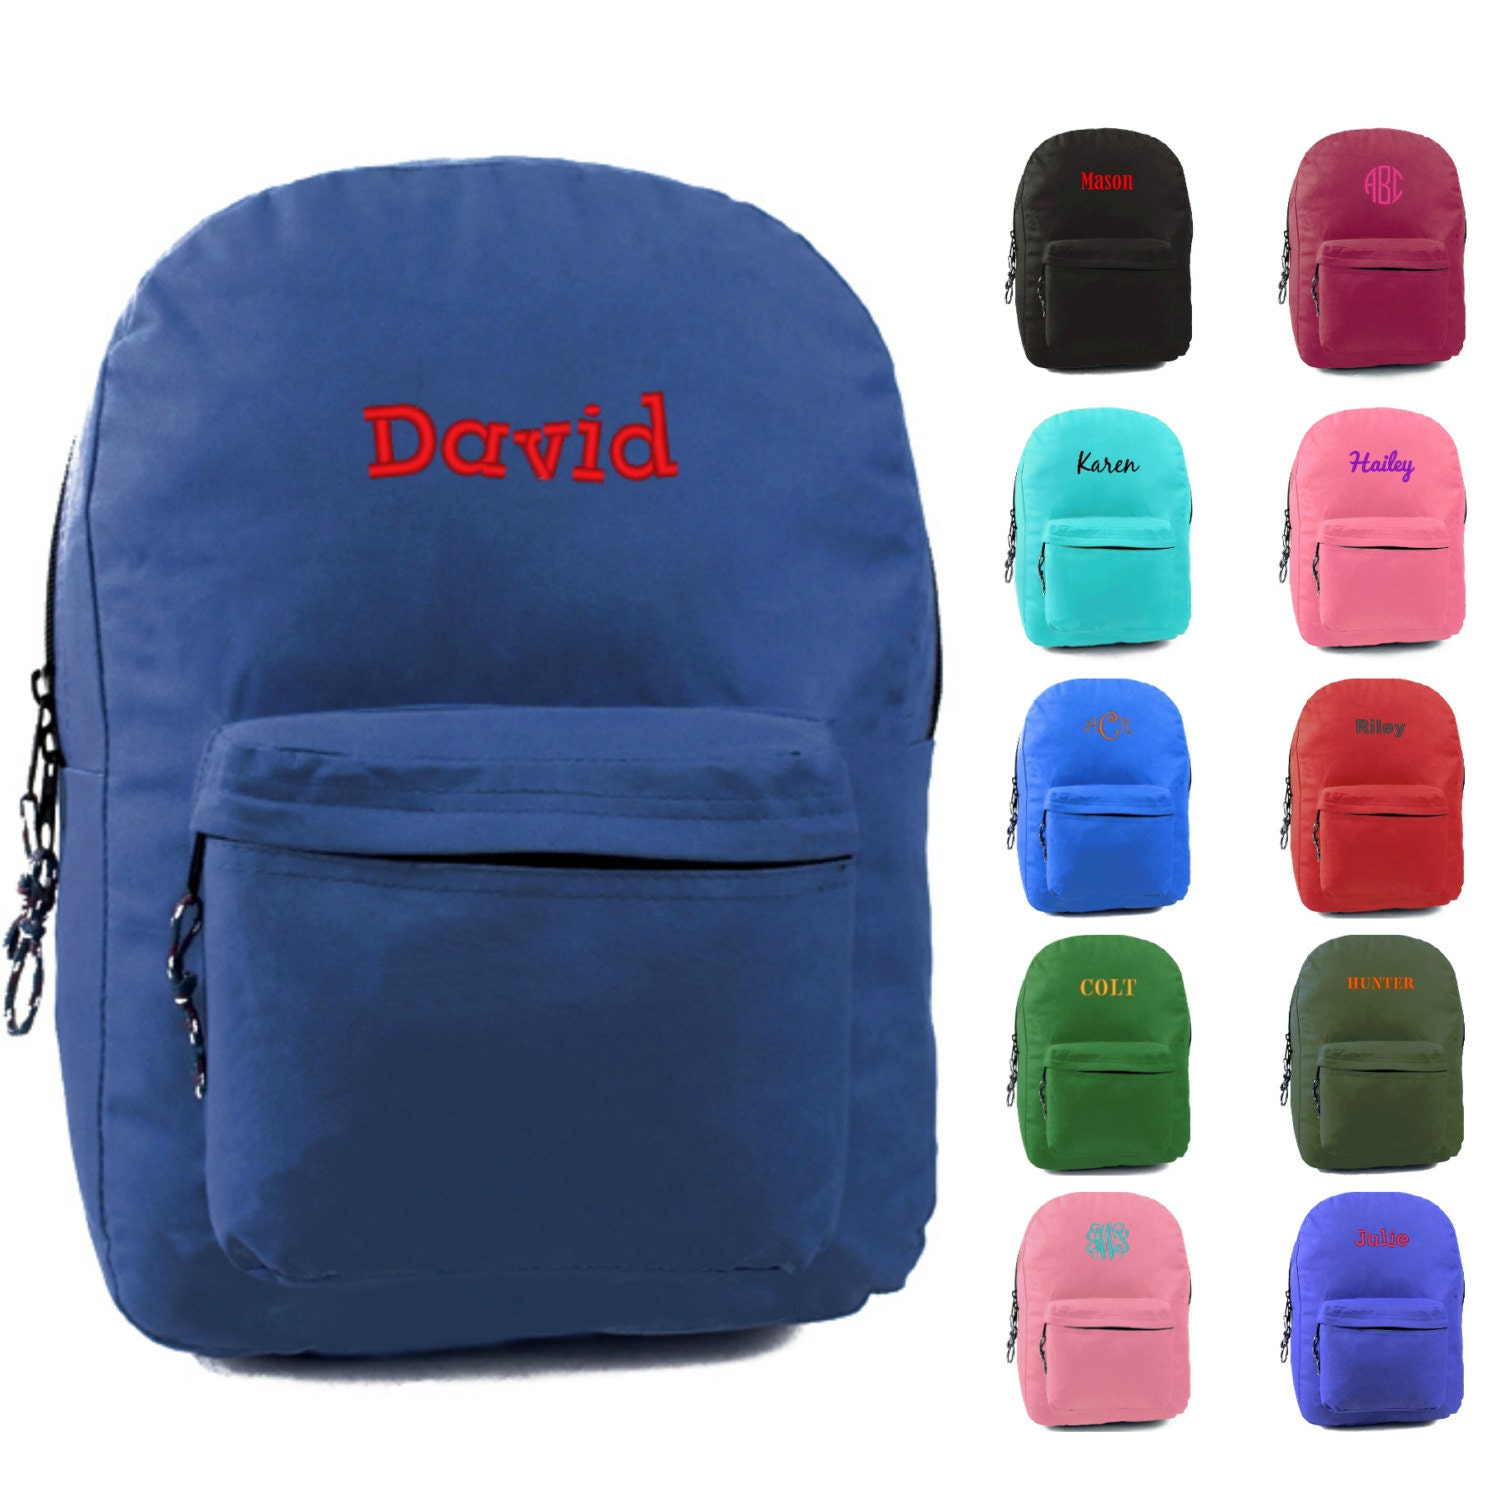 Backpack Bags For Kids